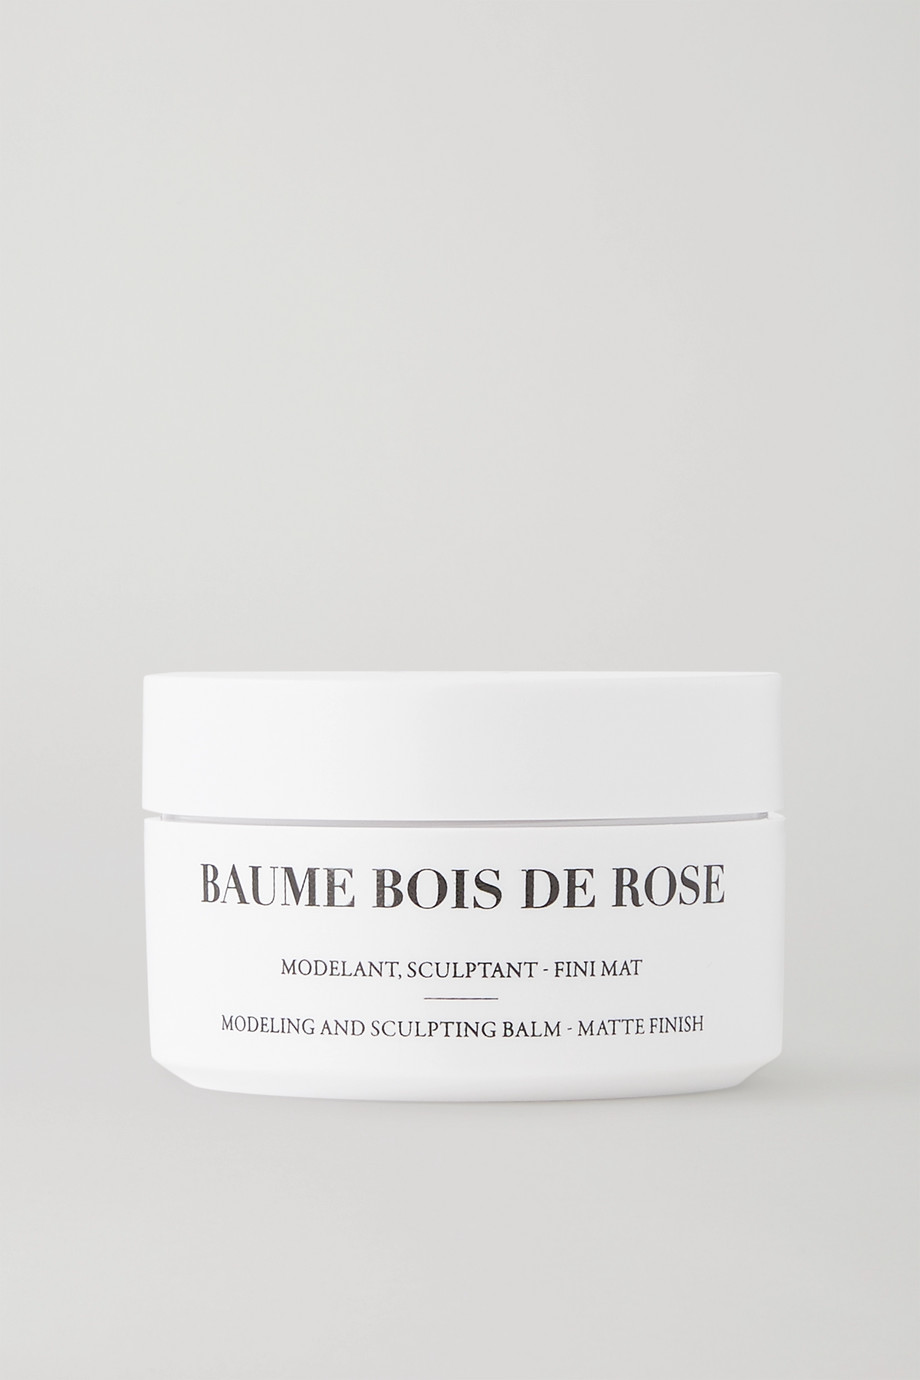 Leonor Greyl Paris Baume Bois De Rose Modeling and Sculpting Balm, 50 ml – Haarbalsam